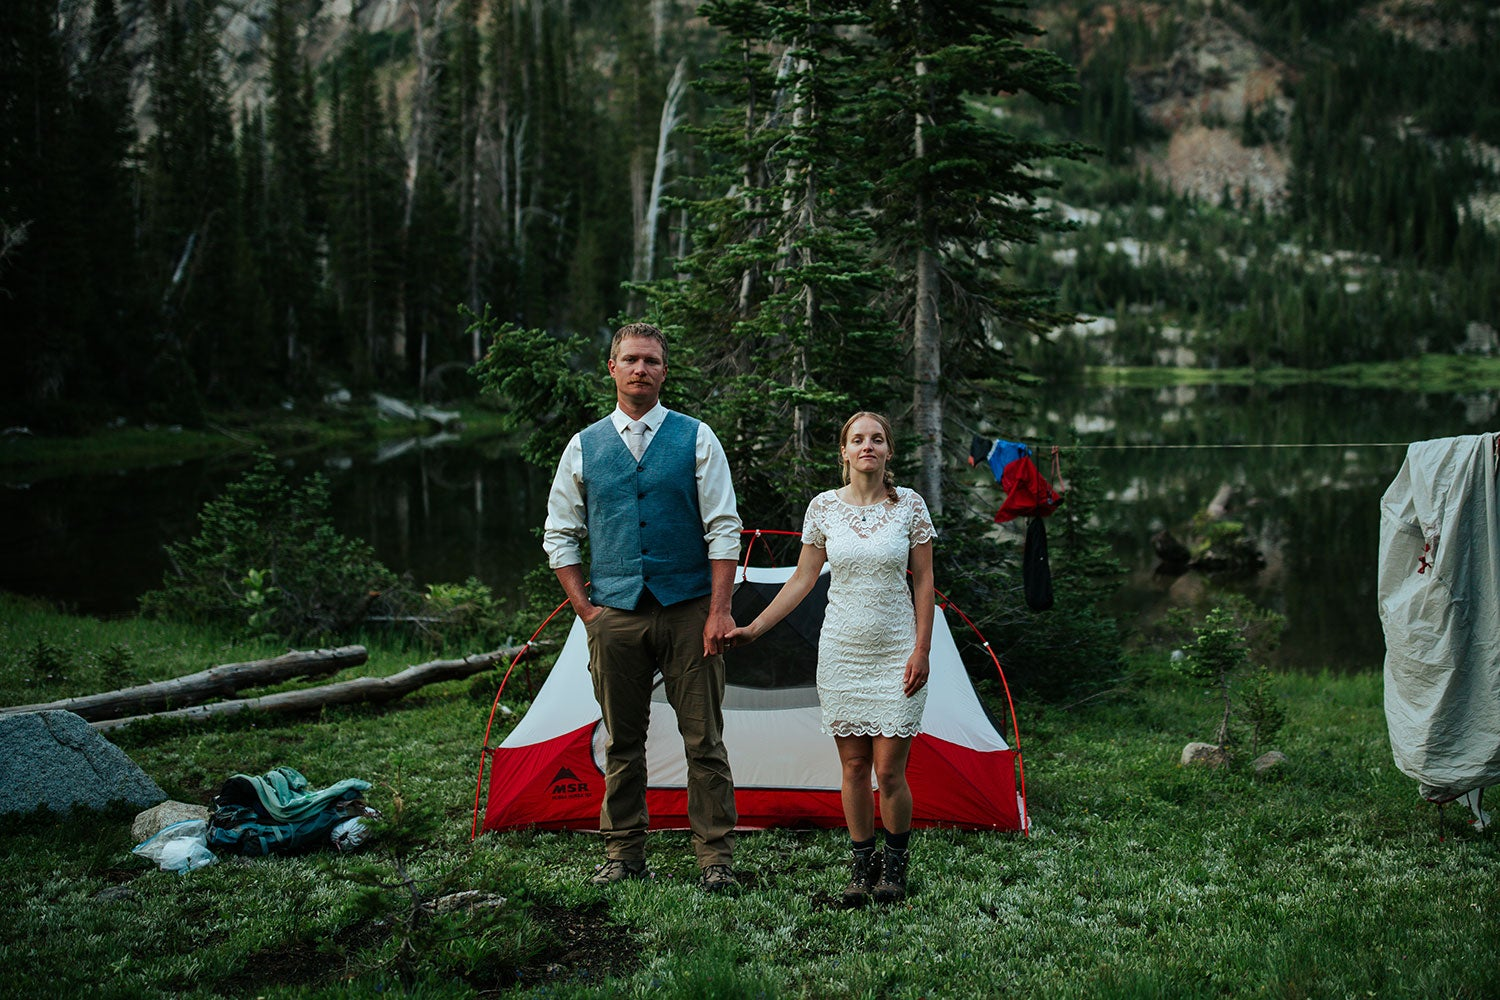 a man and a woman holding hands and wearing wedding attire at a campground in front of a tent on the edge of a forested lake